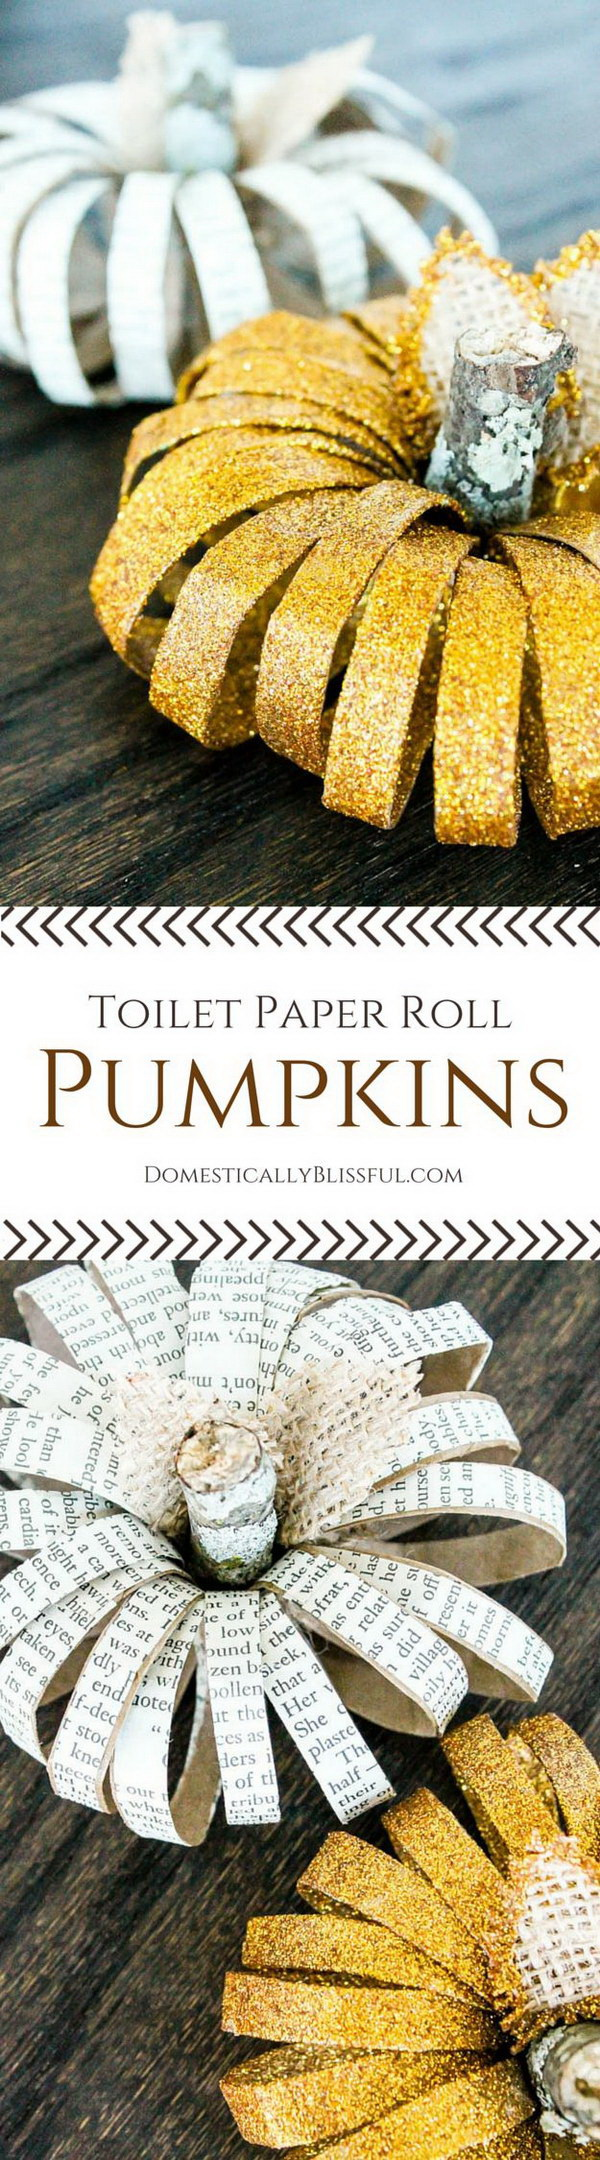 DIY Toilet Paper Roll Pumpkins. Try a new and unique pumpkin with toilet paper rolls as a fall or Thanksgiving decoration!